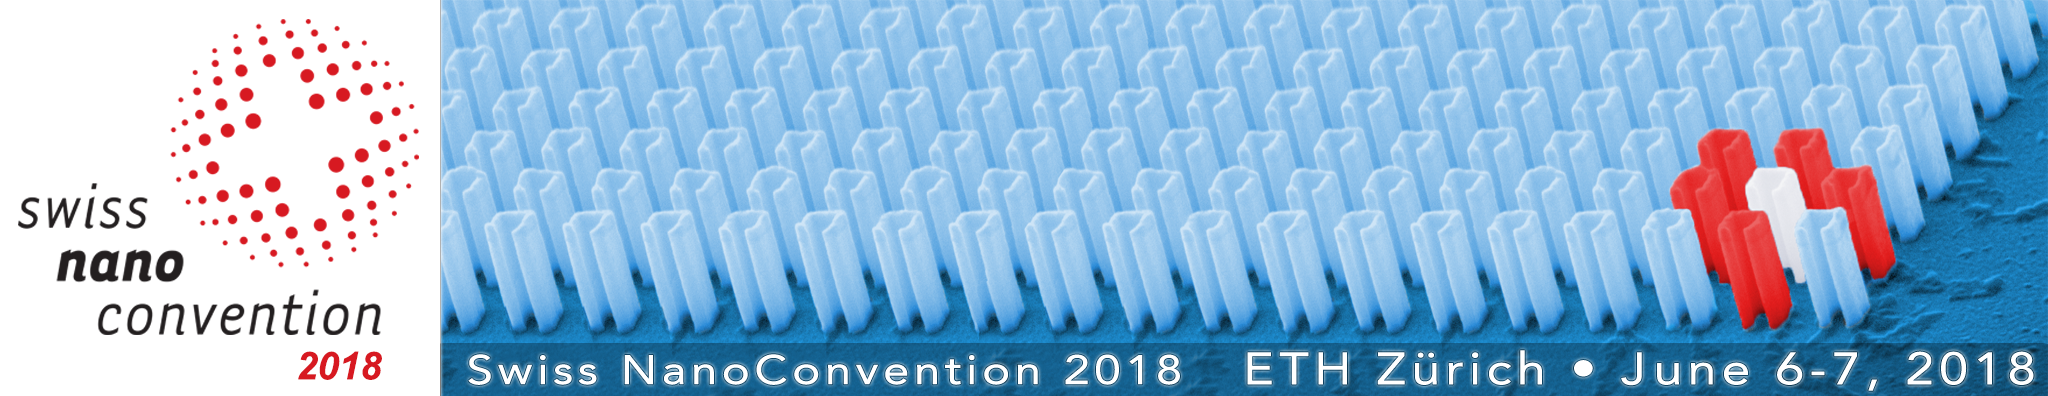 Swiss NanoConvention 2018